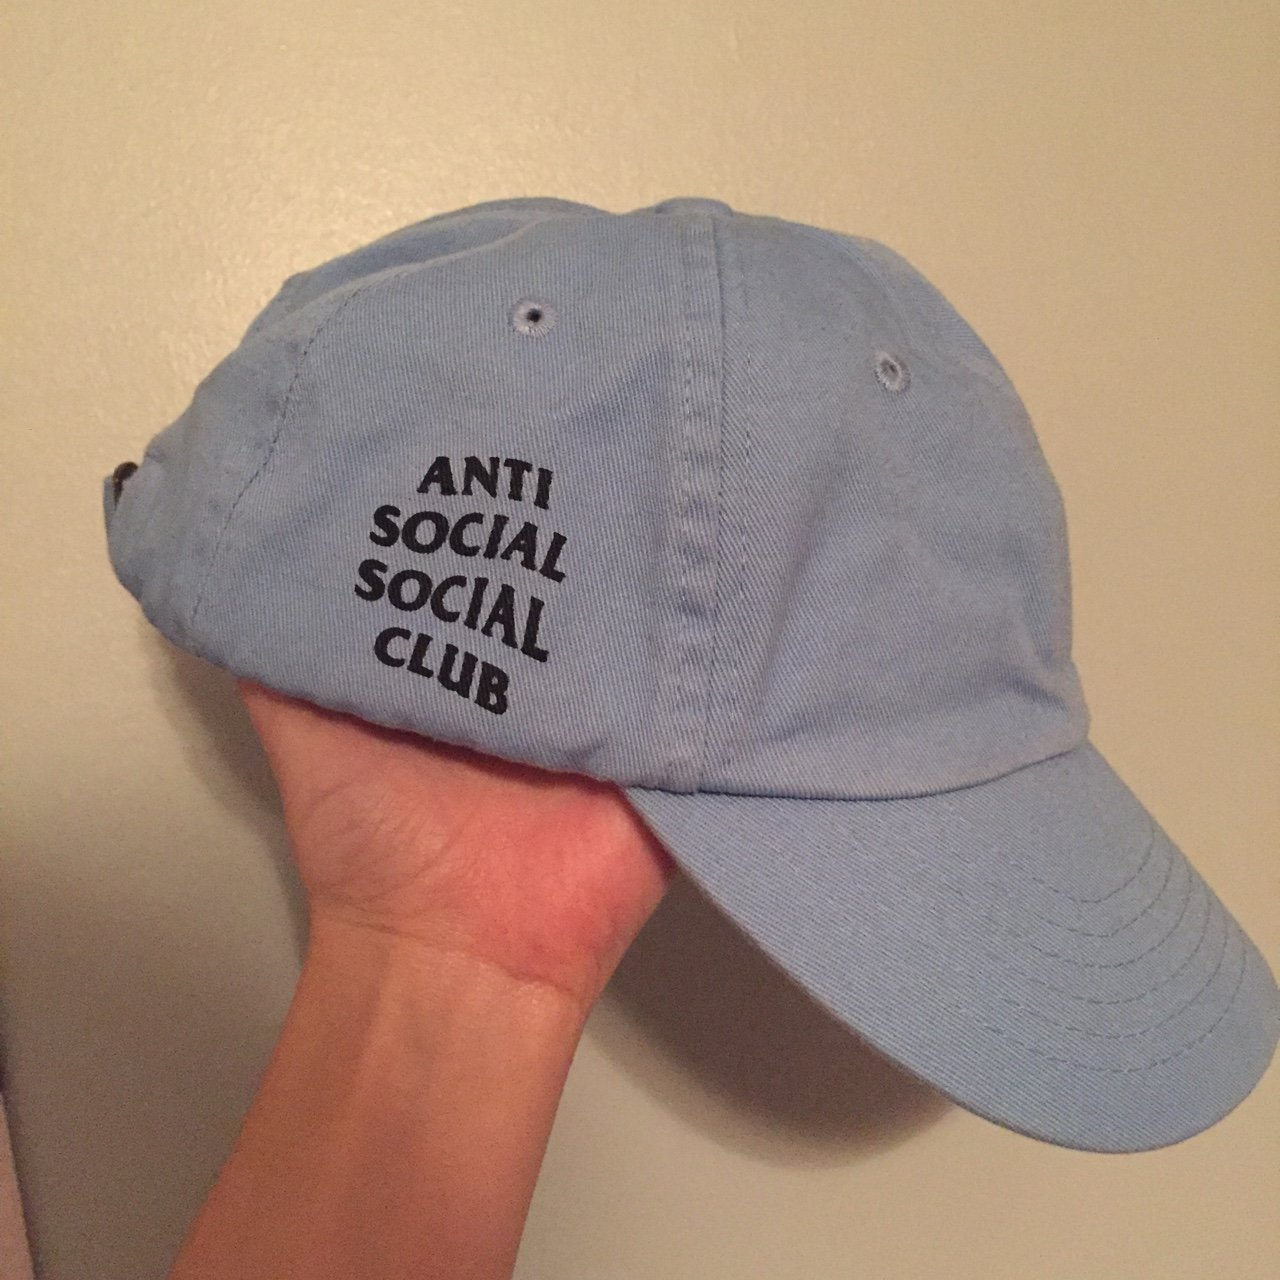 Anti Social Social Club light blue hat in great condition - Depop e5acb362cac